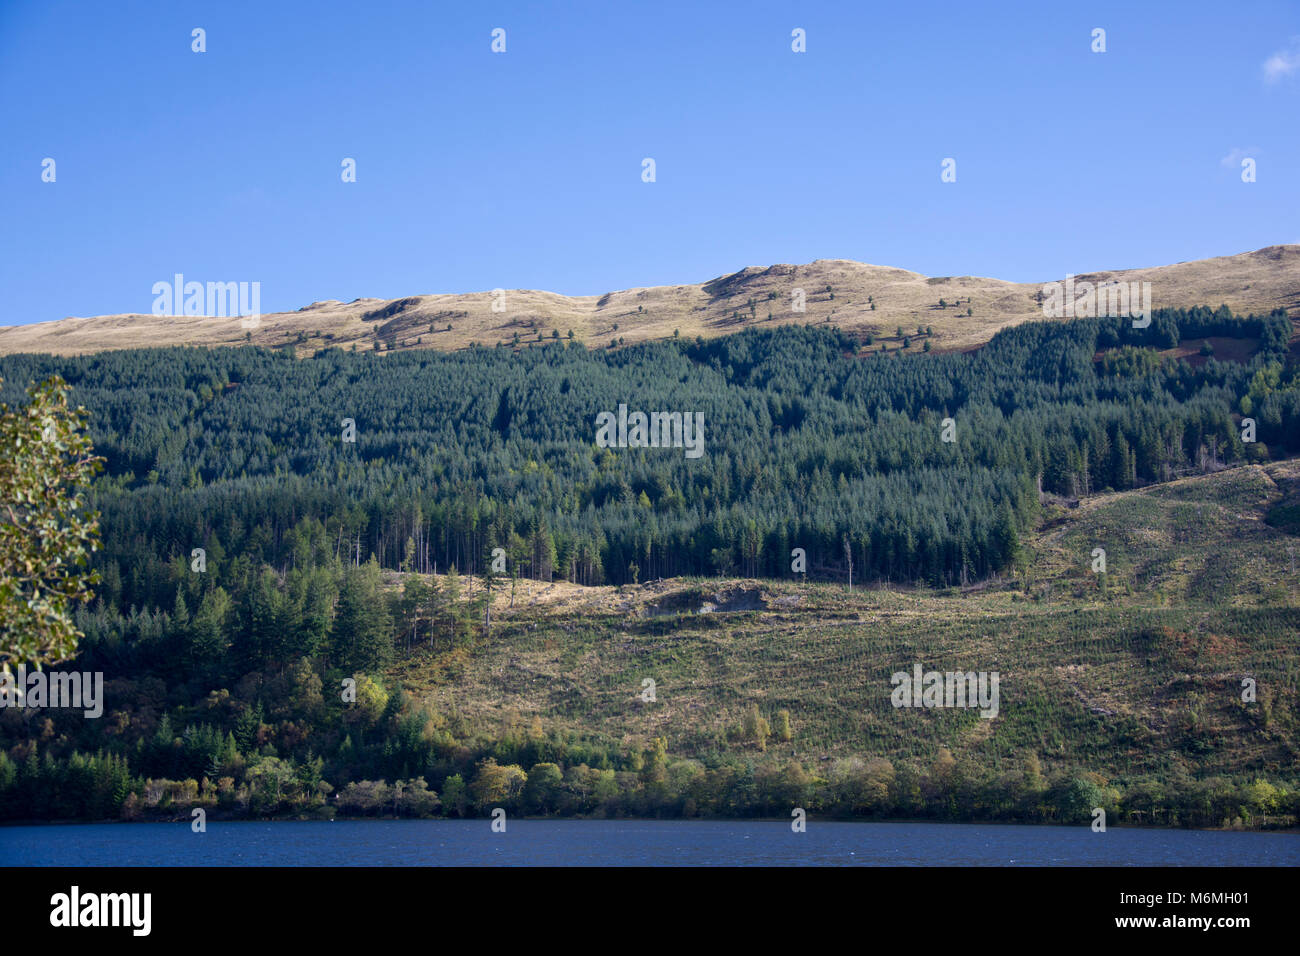 A plantation of evergreen trees on a mountainside by the banks of Loch Lubnaig, Sterlingshire, Scotland, UK. - Stock Image